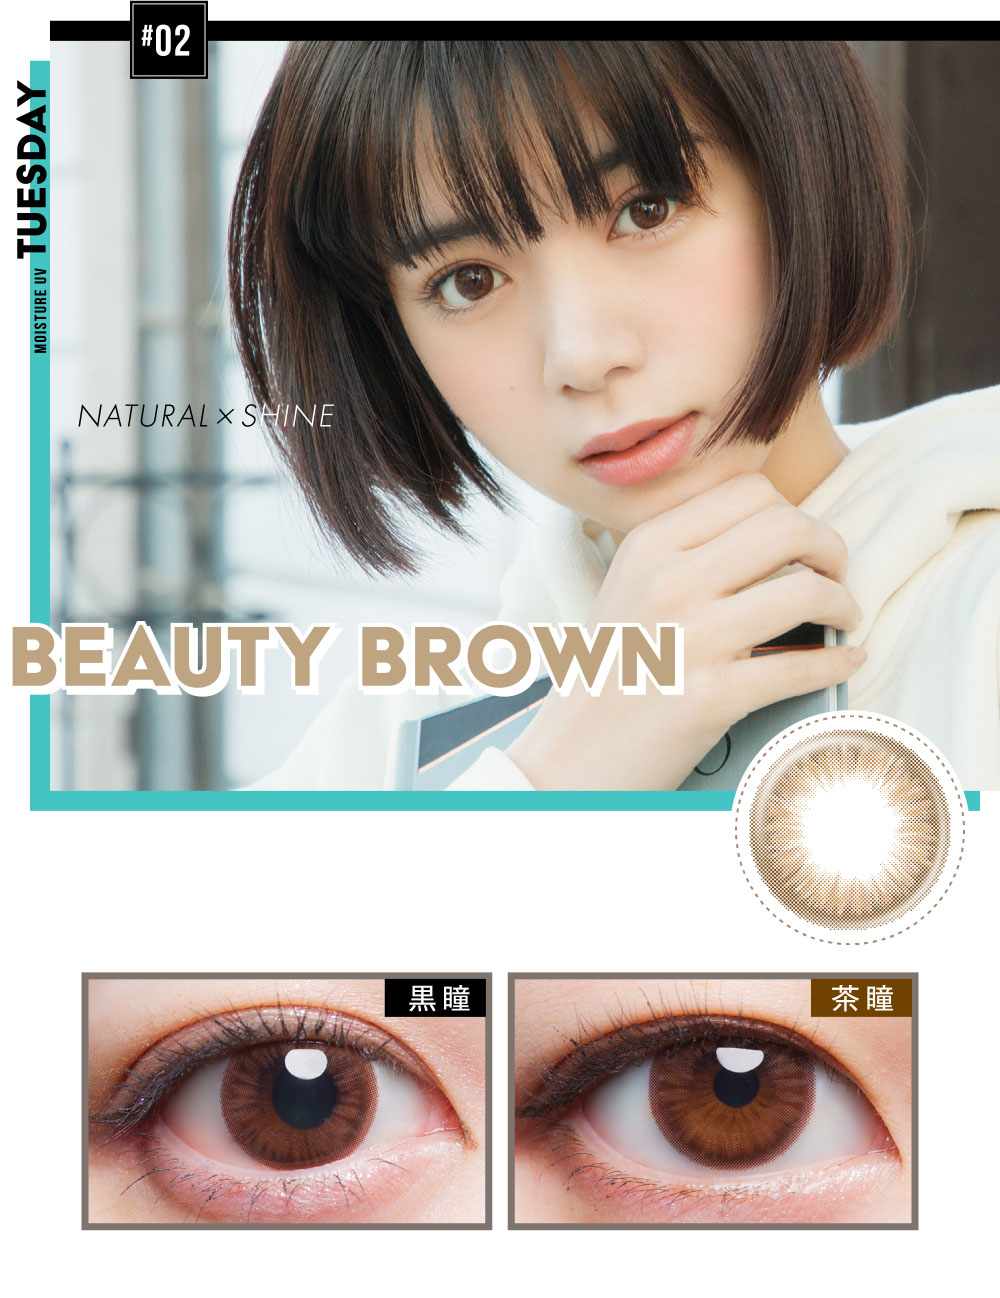 BEAUTY BROWN